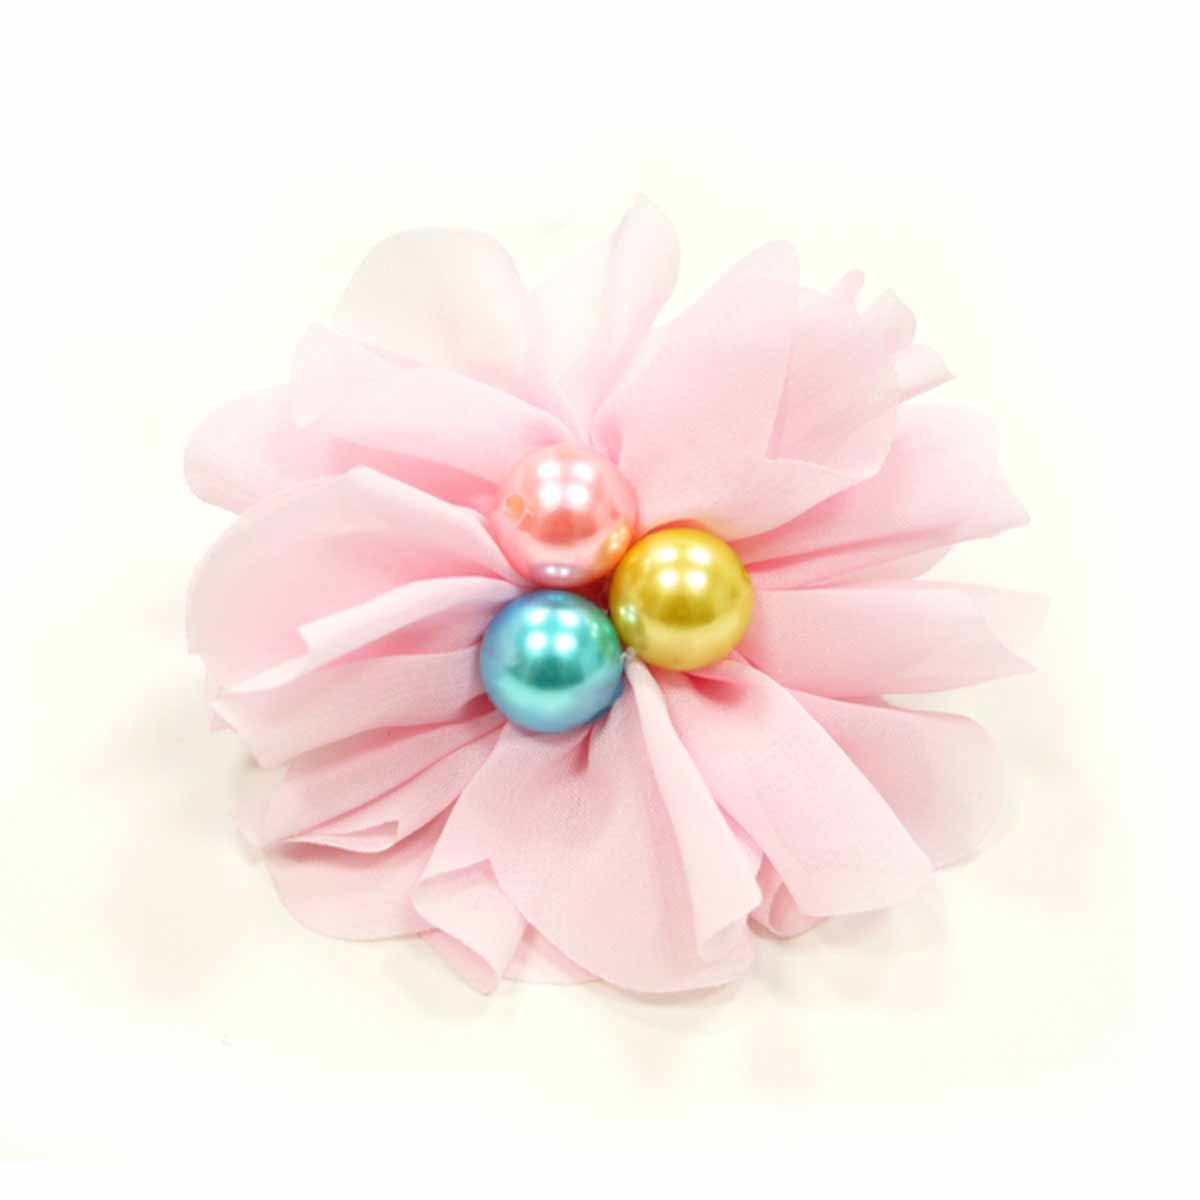 EasyBOW Easter Flower Dog Collar Attachment by Dogo - Pink